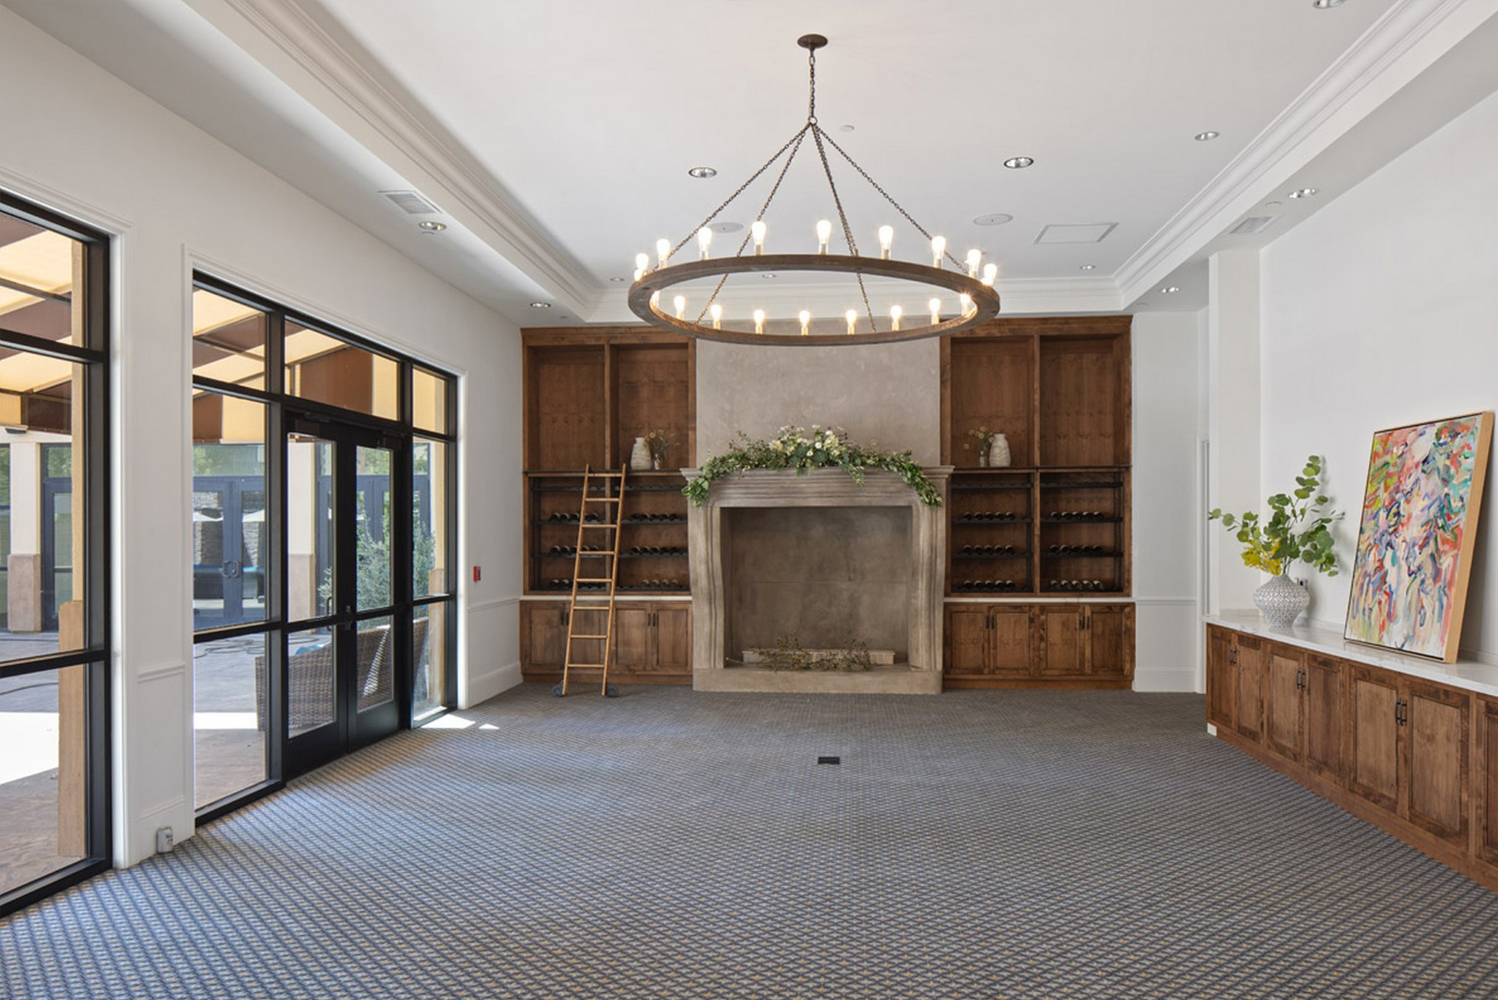 The hotel has 5,000 square feet of venue space that can host up to 300 guests.